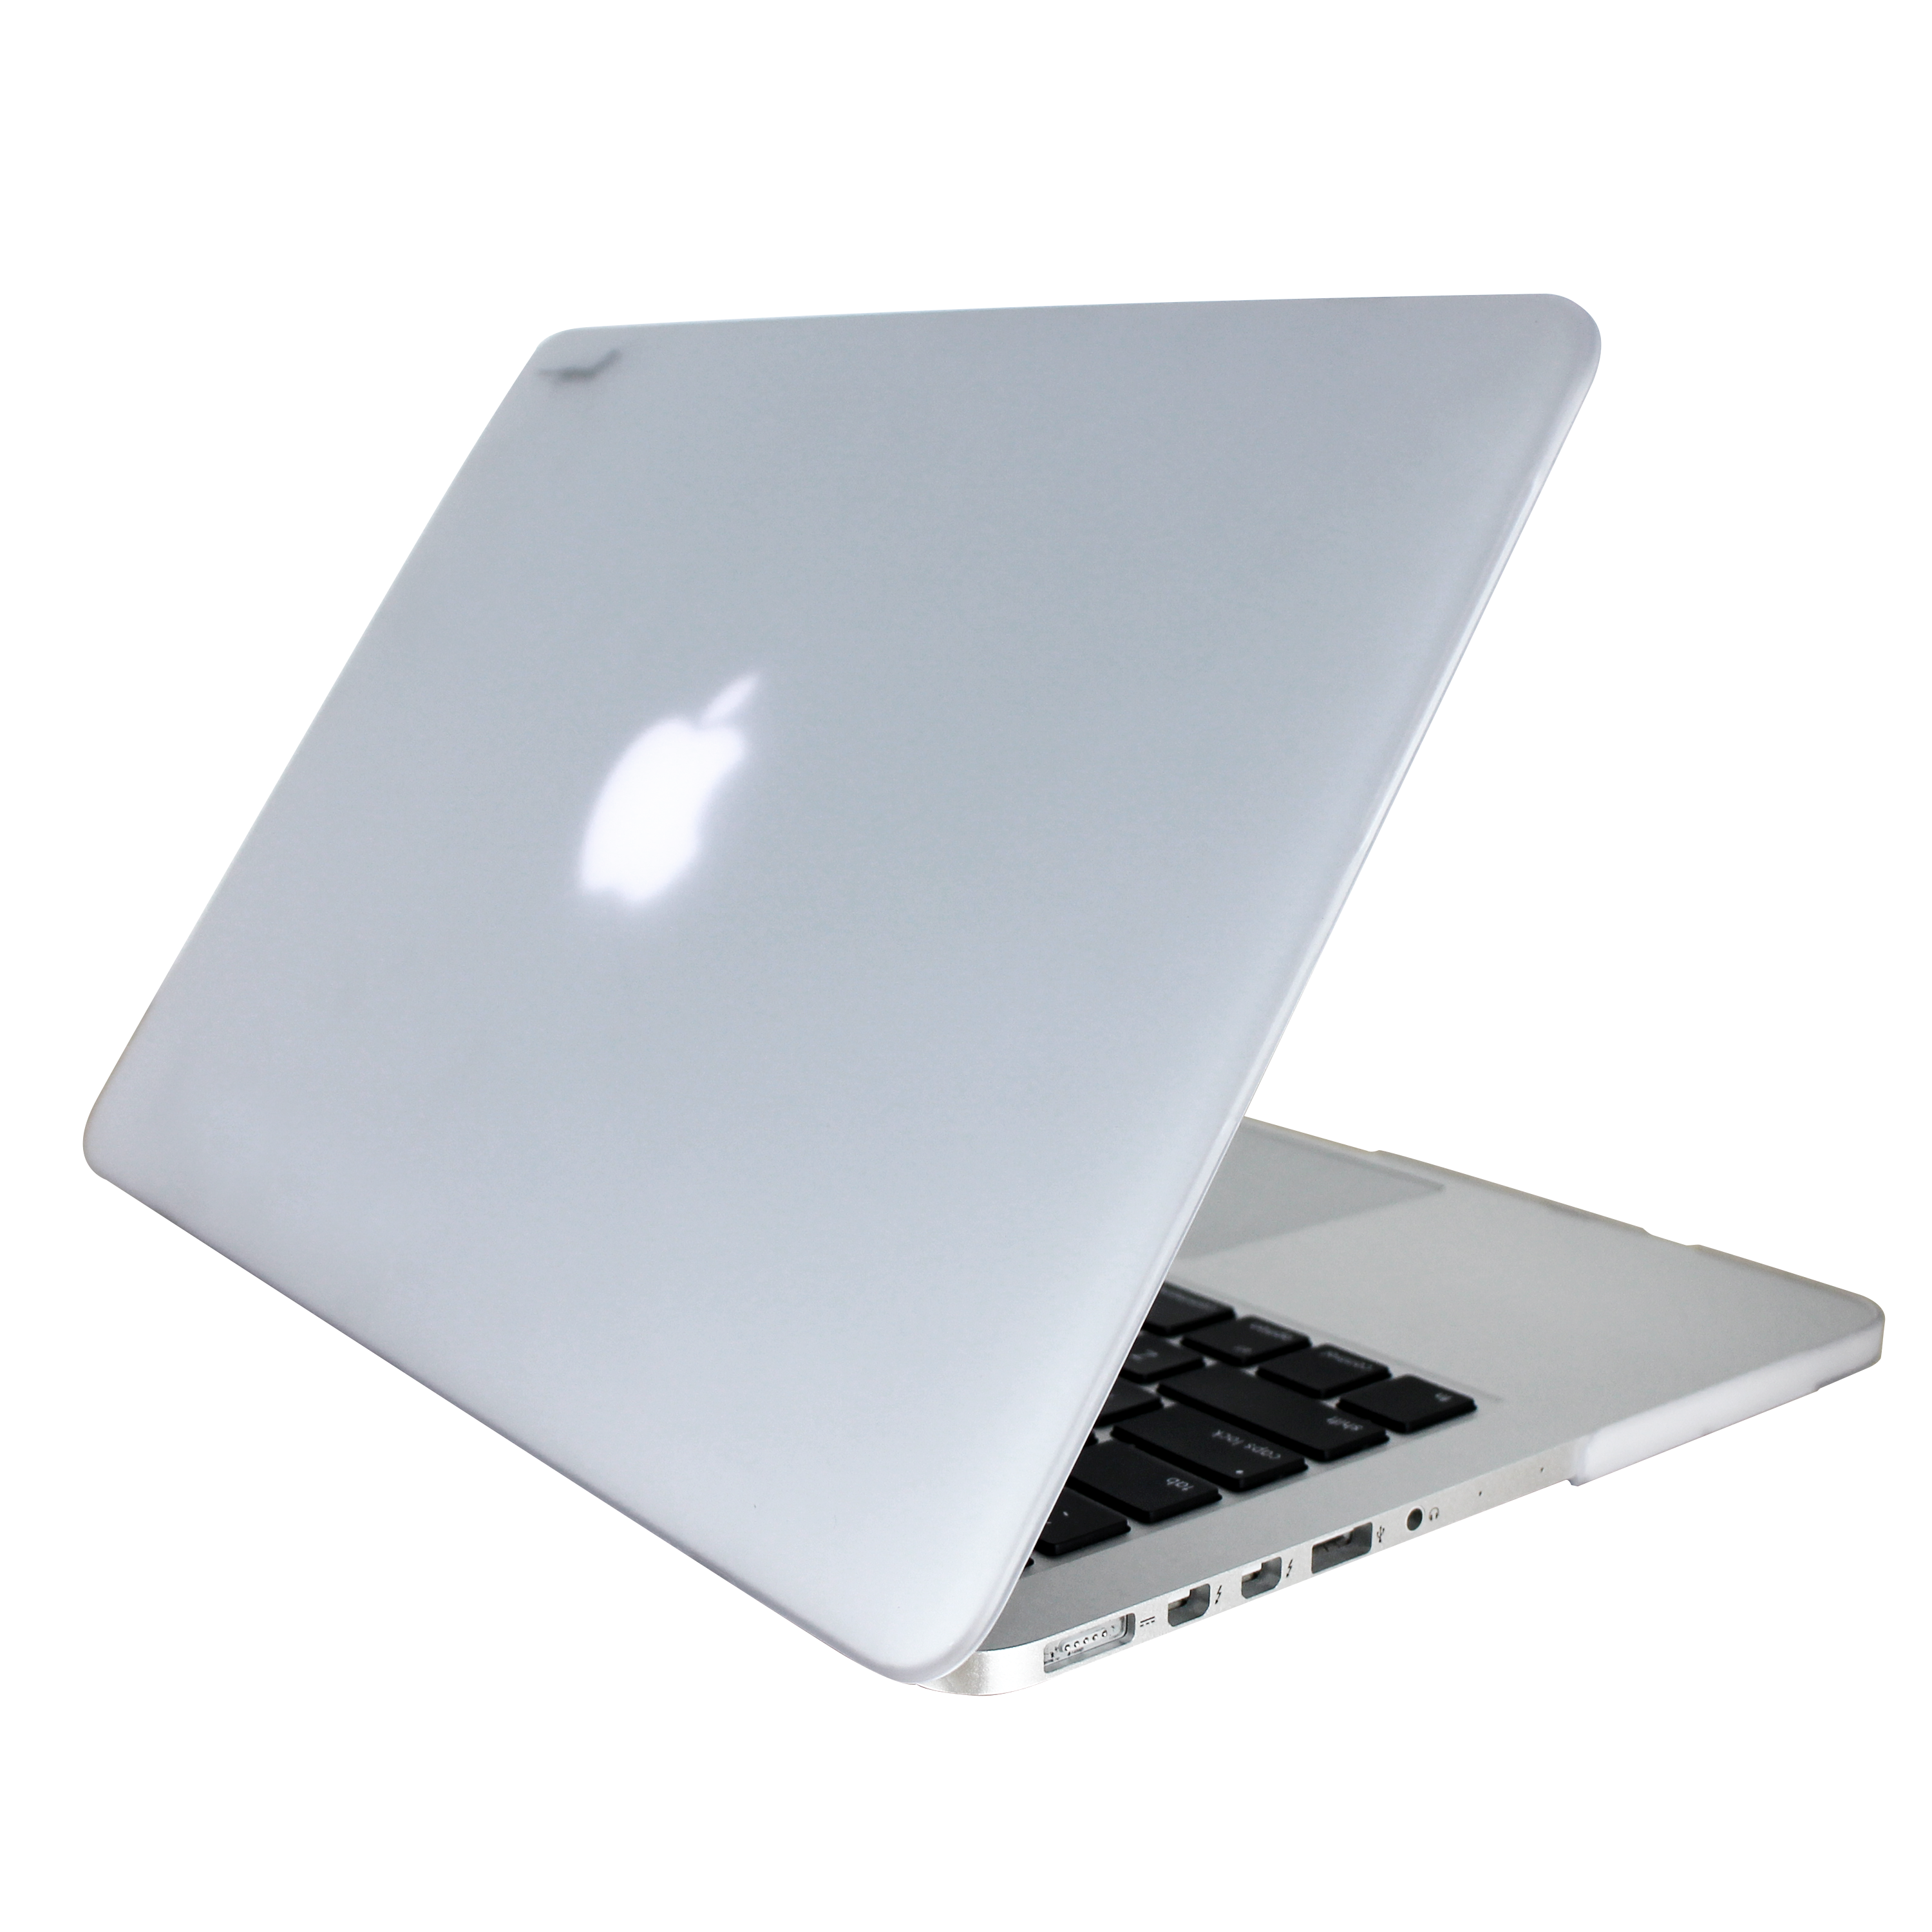 Macbook Transparent